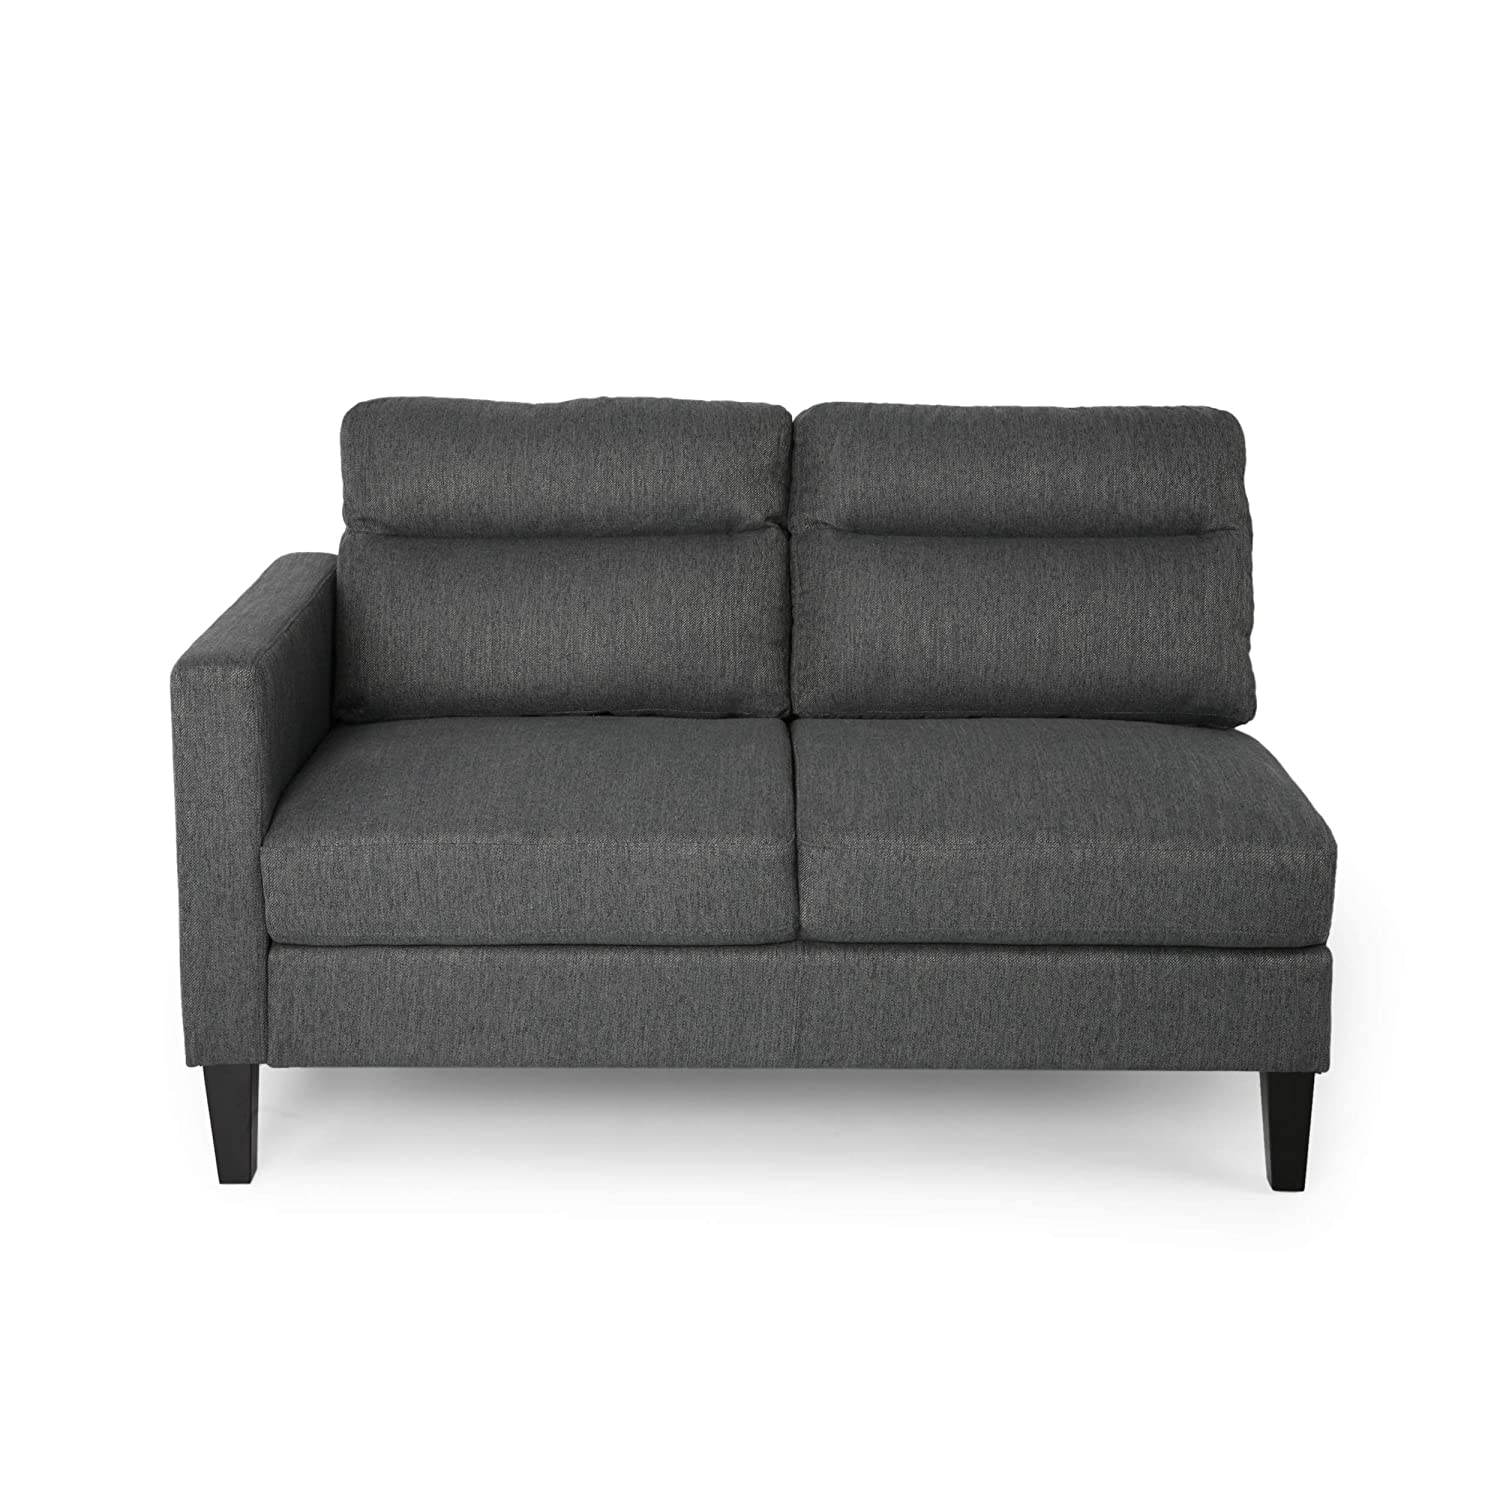 Amazon.com: Aurora Modern Fabric Upholstered 4 Seater ...